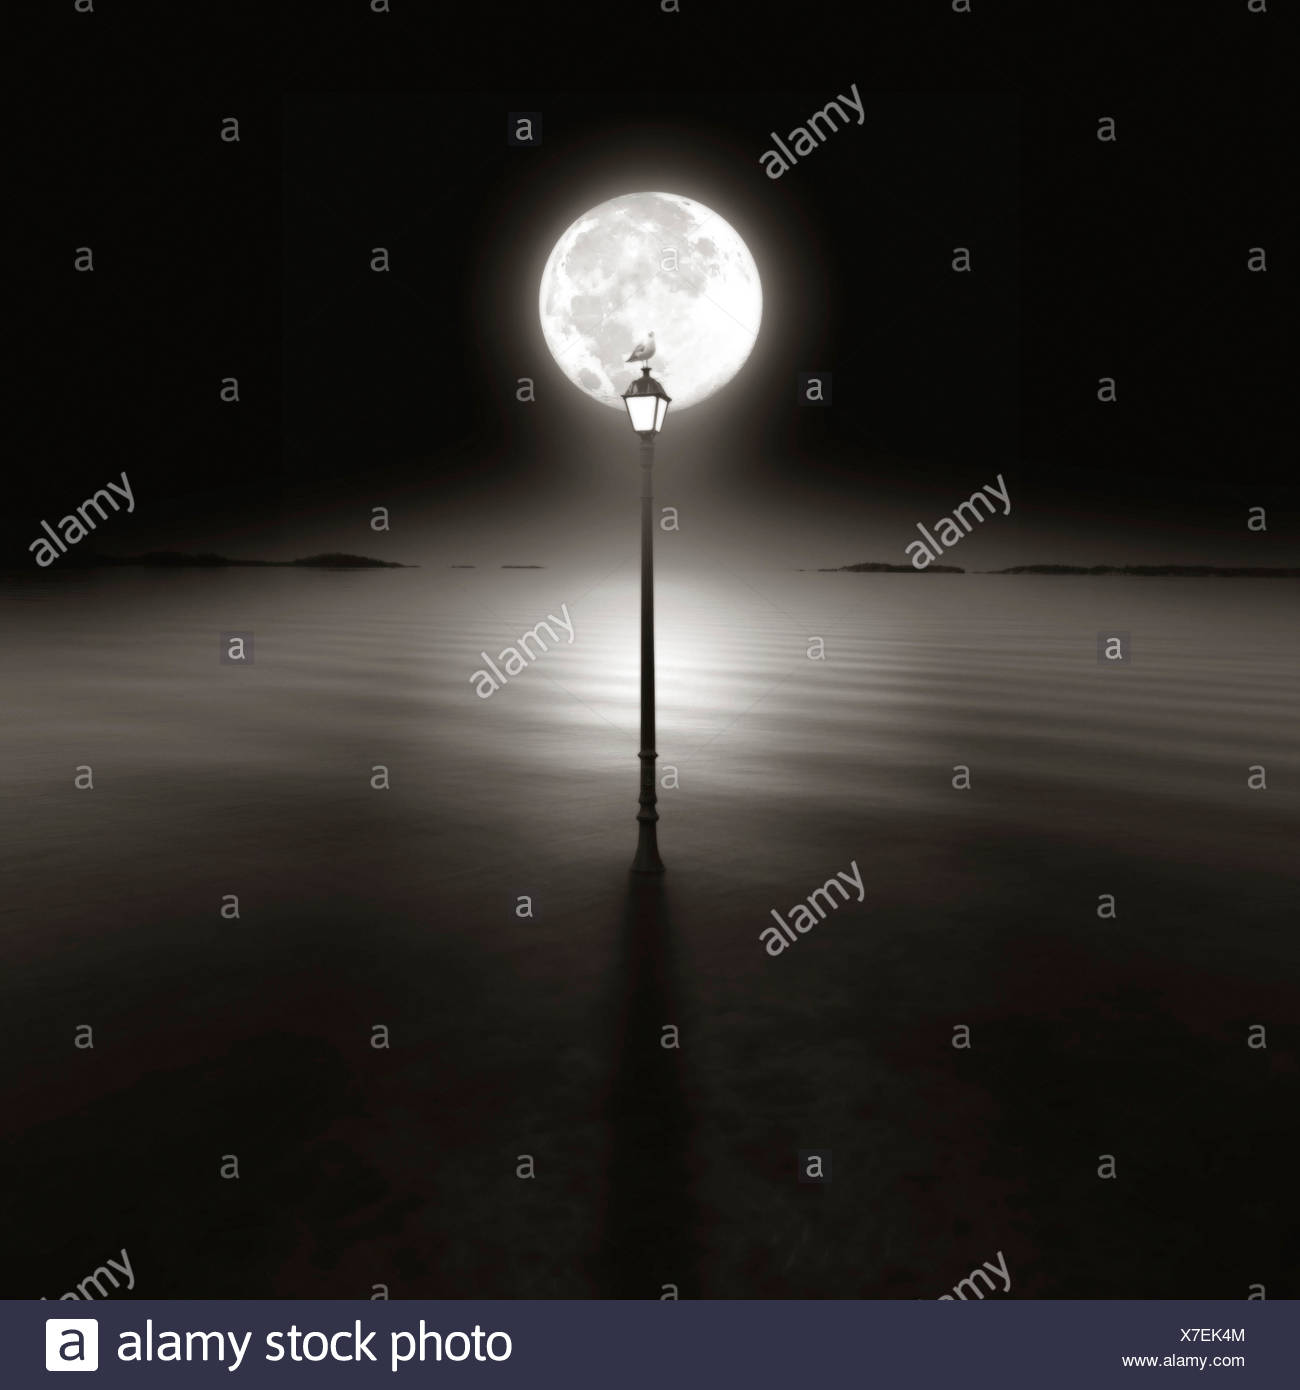 A seagull sitting on top of a lamp post at night silhouetted by the moon - Stock Image